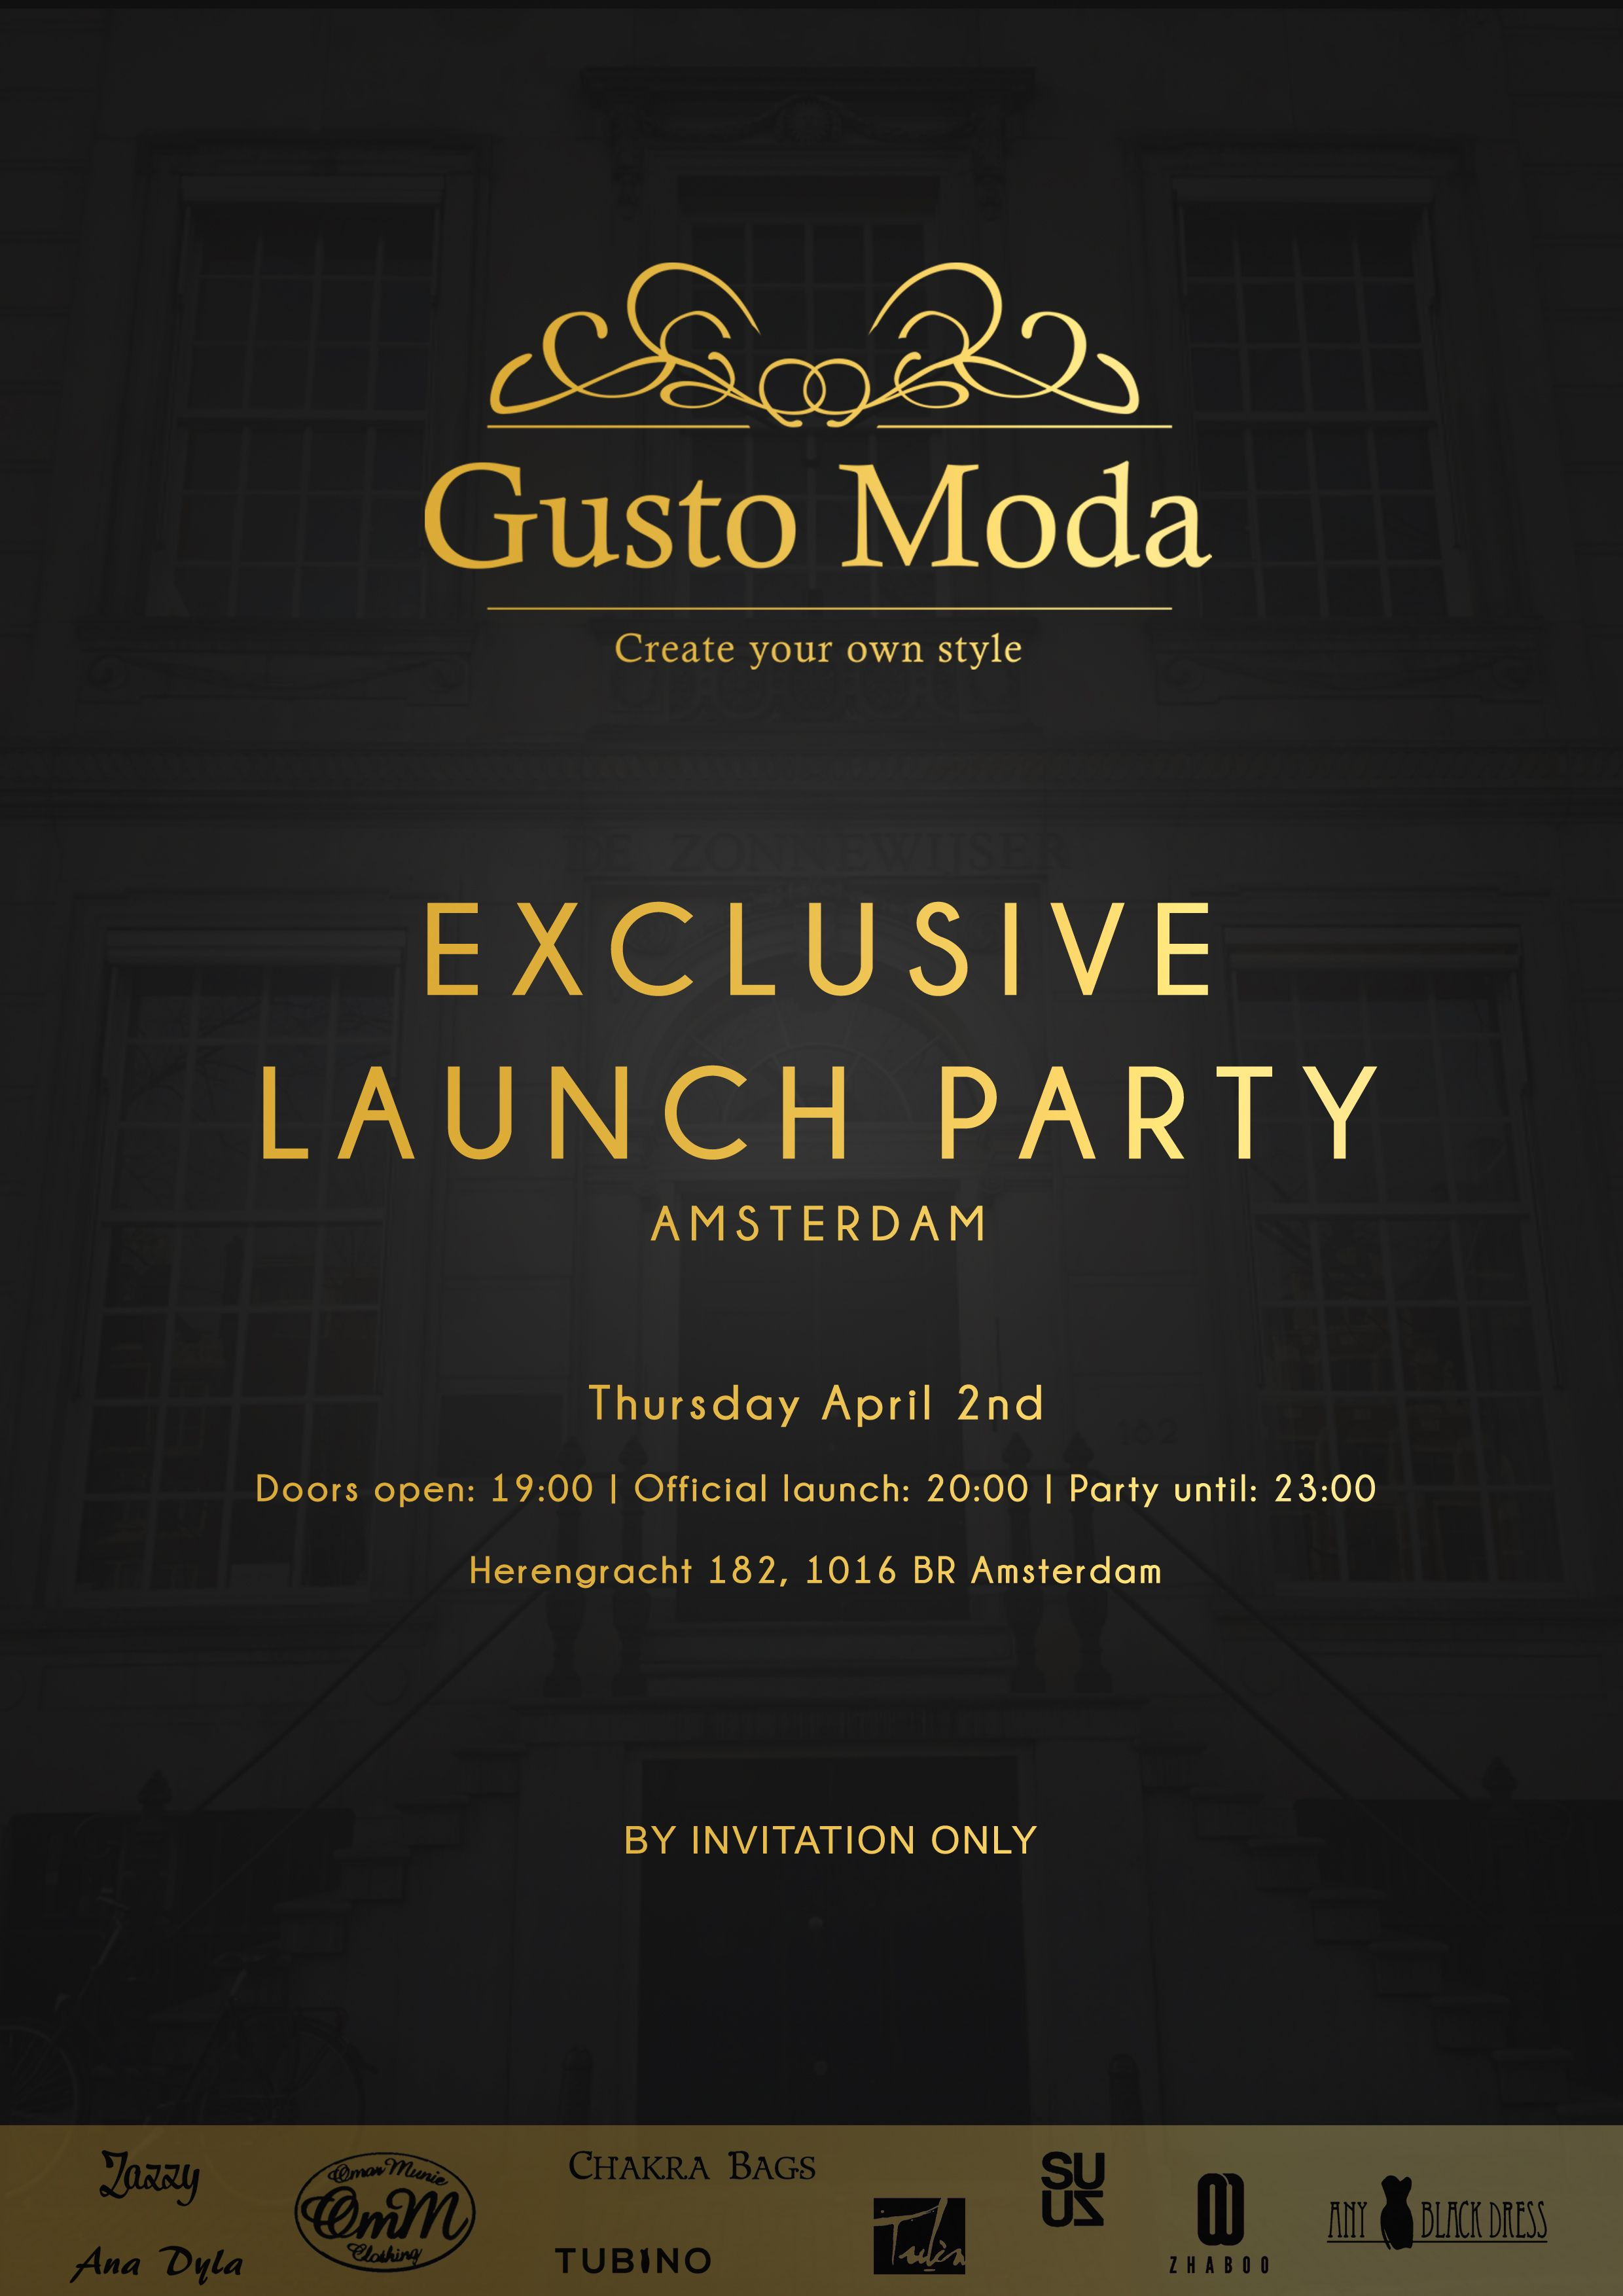 the invitation of the official launch party of gusto moda launchparty - Launch Party Invitation